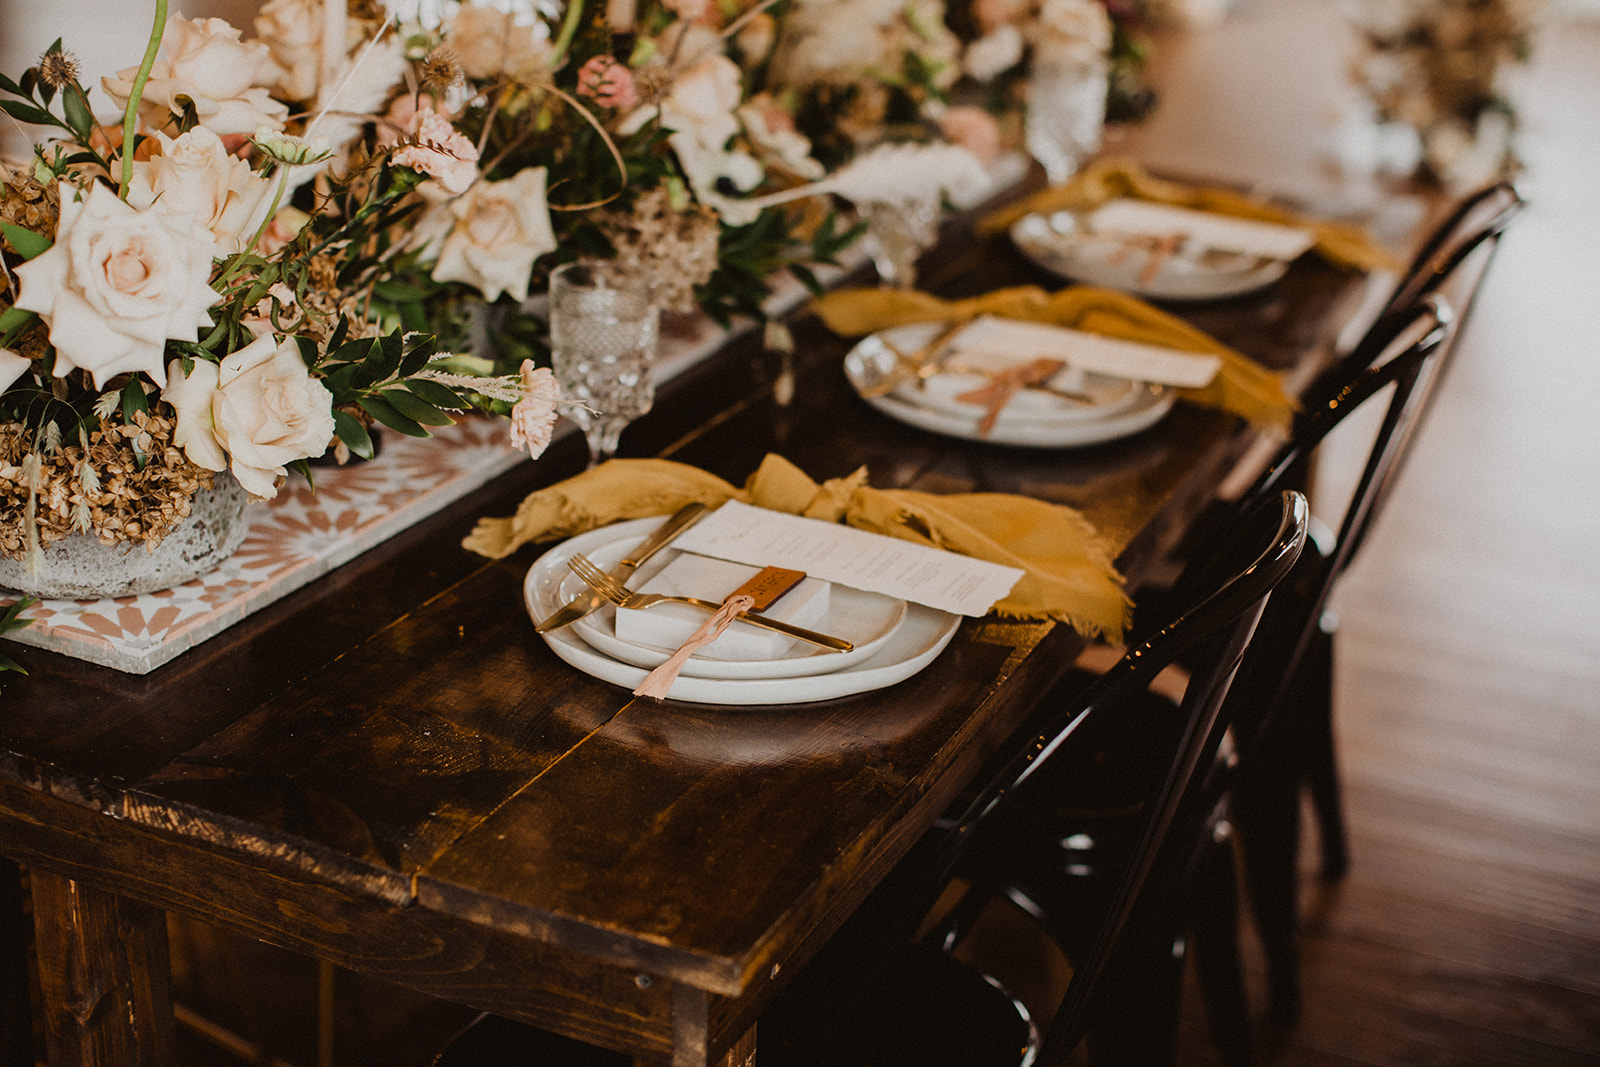 Wedding Tablescape with Flowers and Place Settings